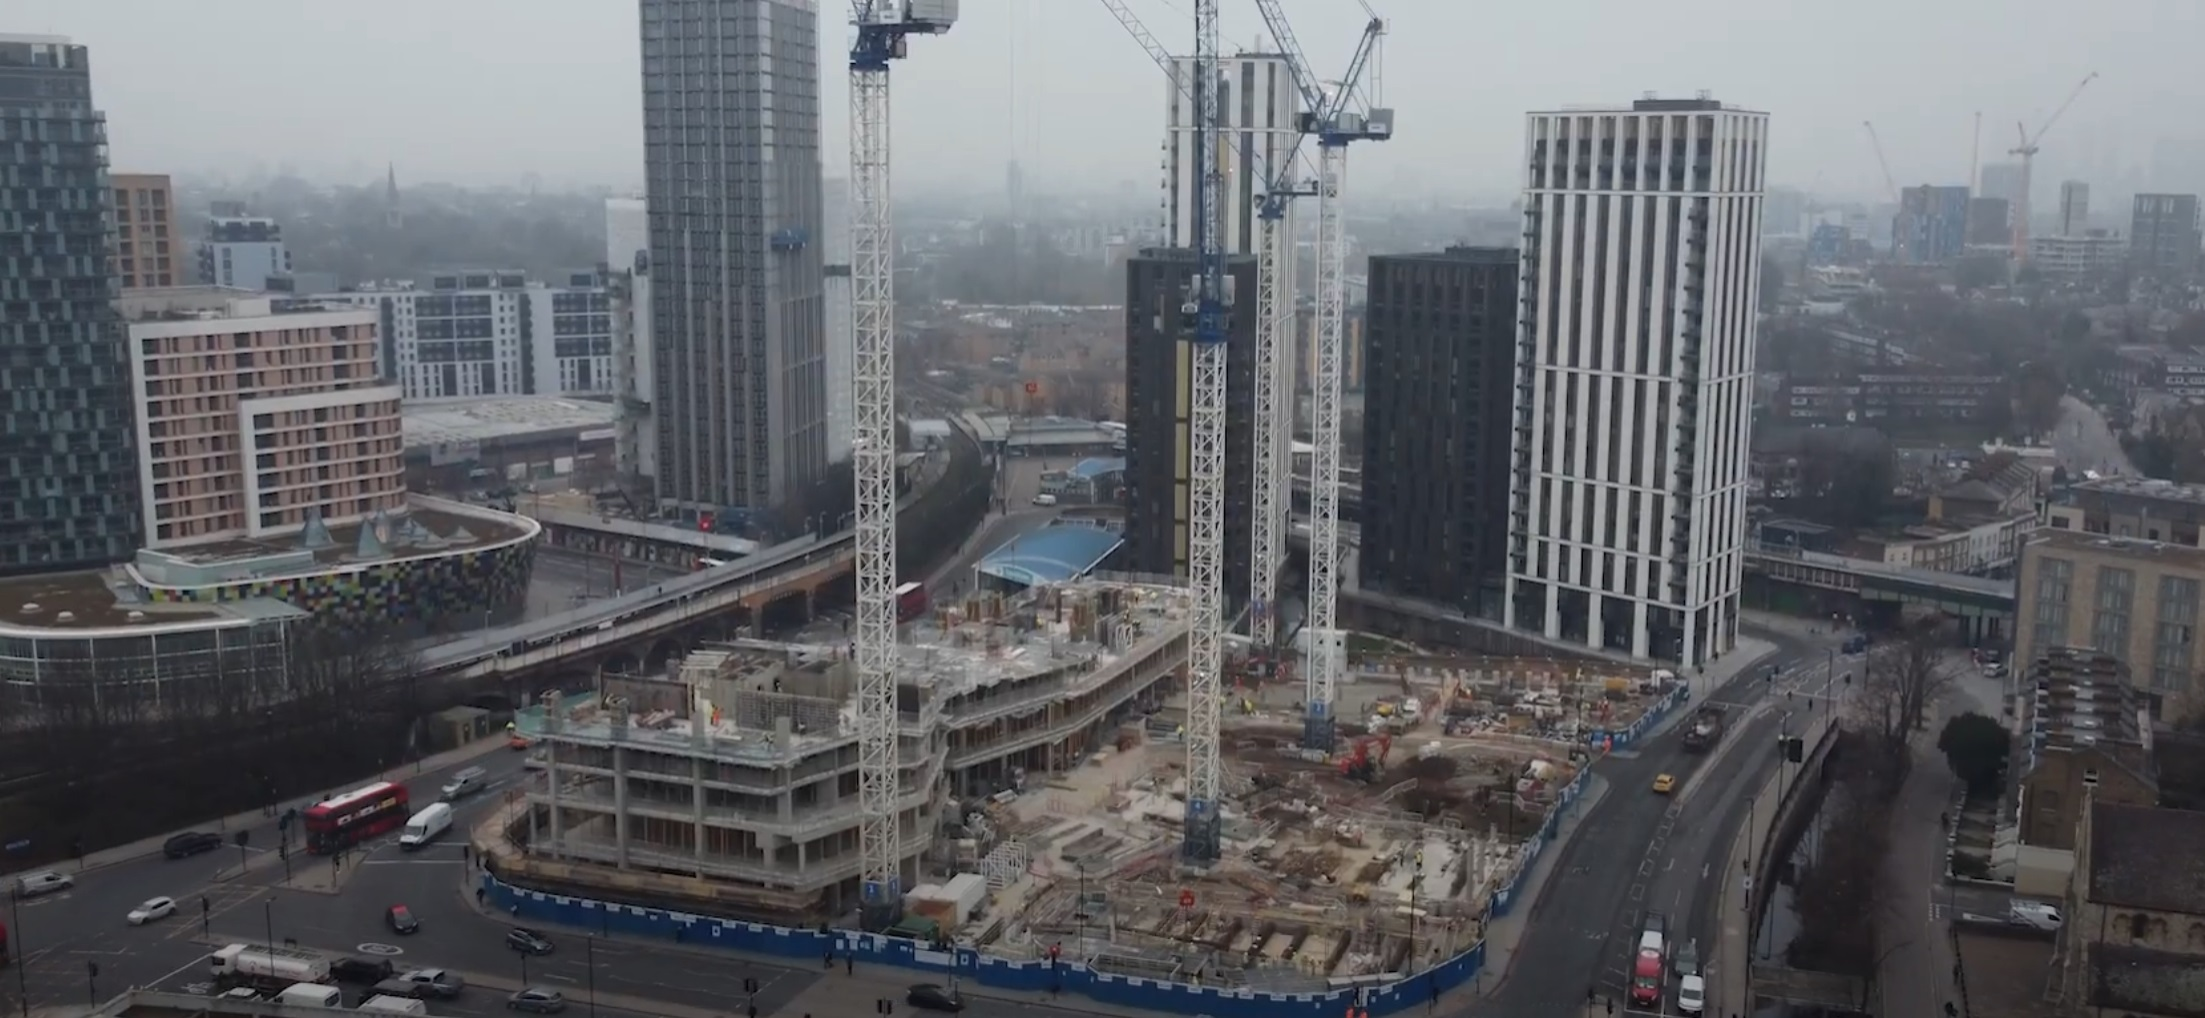 Video update shows Lewisham cinema, shops and housing development